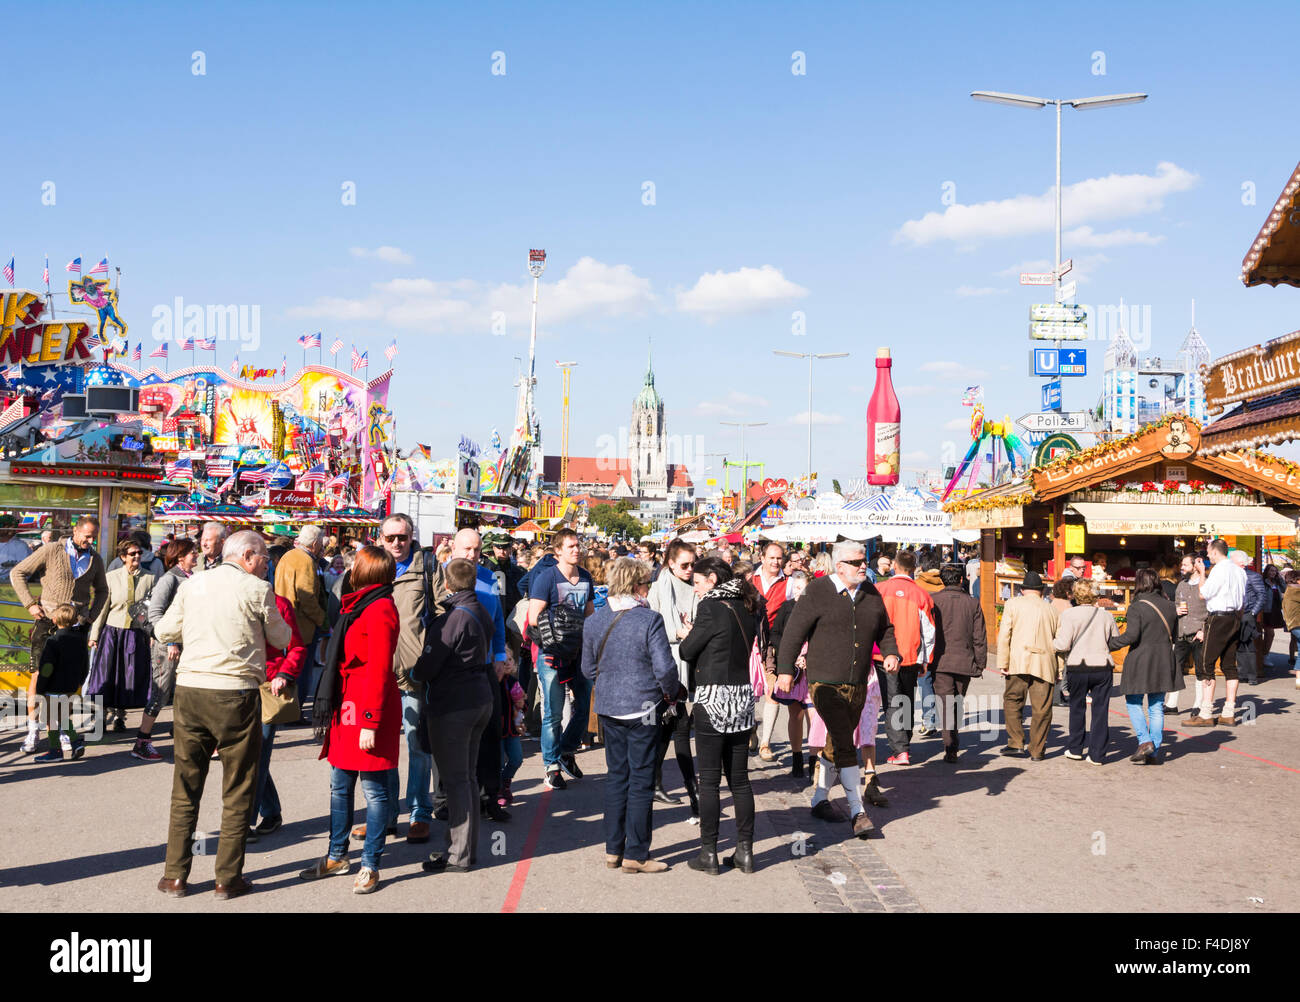 MUNICH GERMANY - SEPTEMBER 30 People in front of the beer tents on the Oktoberfest in Munich Germany on September 30 2015 & MUNICH GERMANY - SEPTEMBER 30: People in front of the beer tents ...